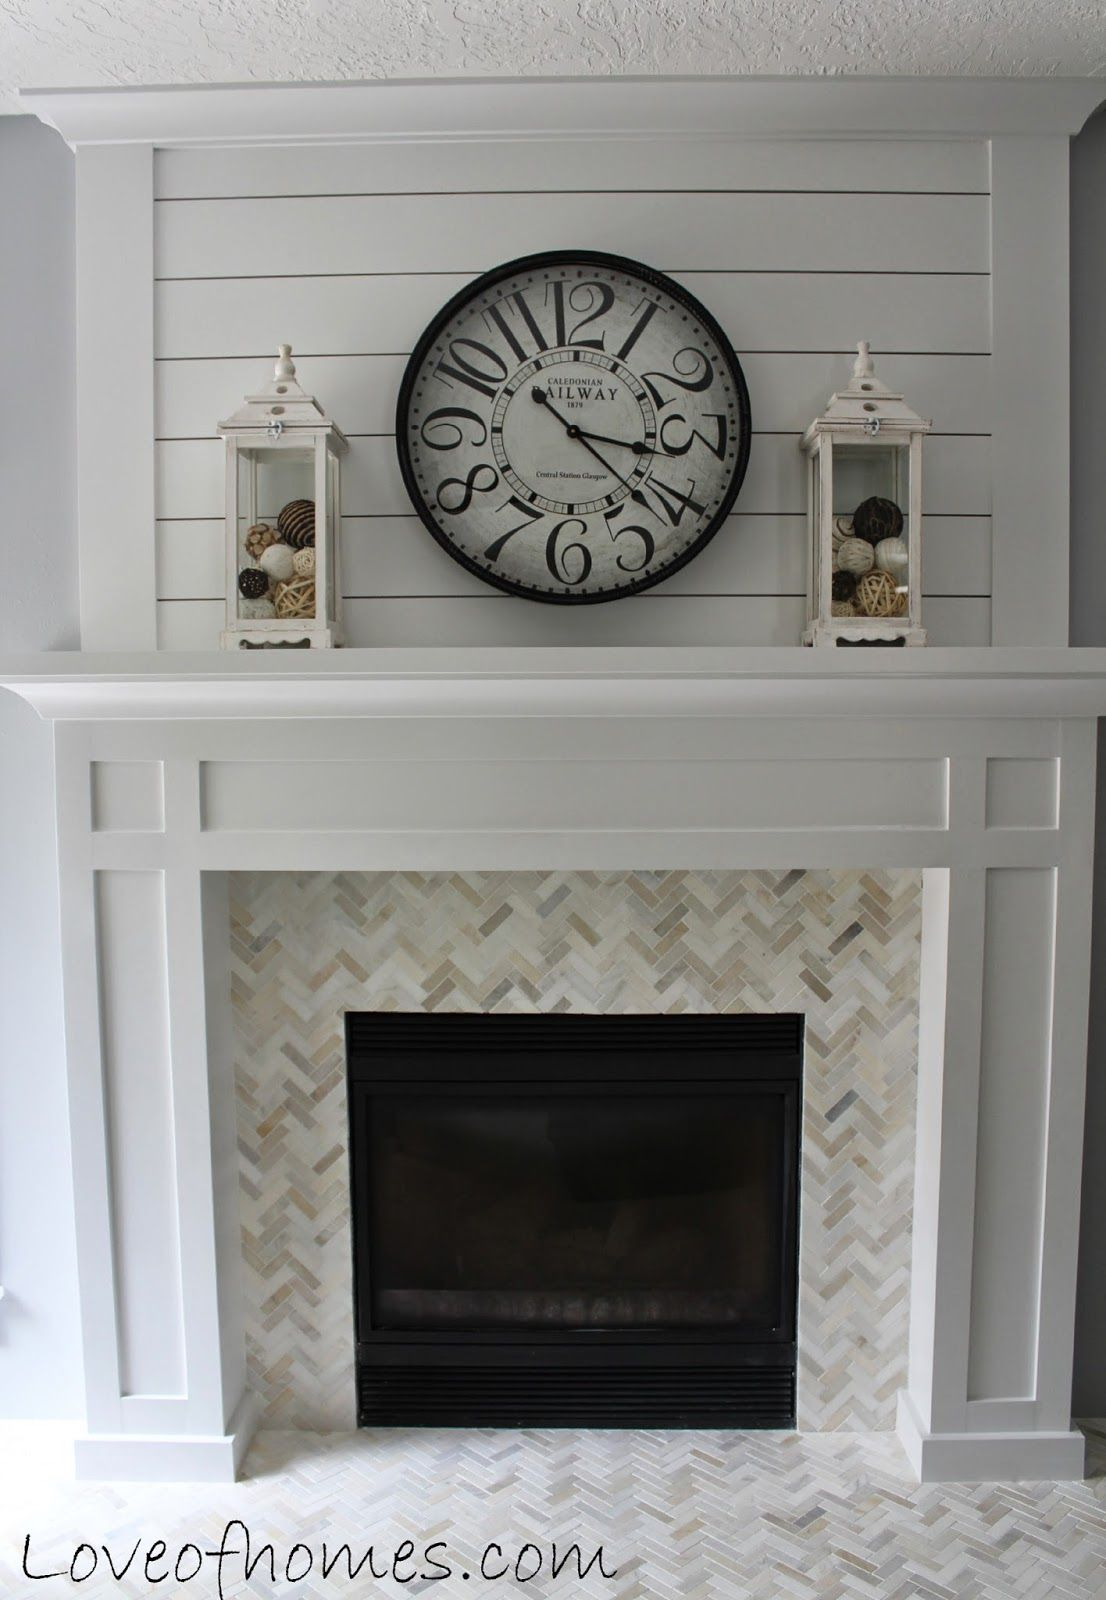 Home decor affordable diy ideas diy ideas mantle and for Decor over fireplace